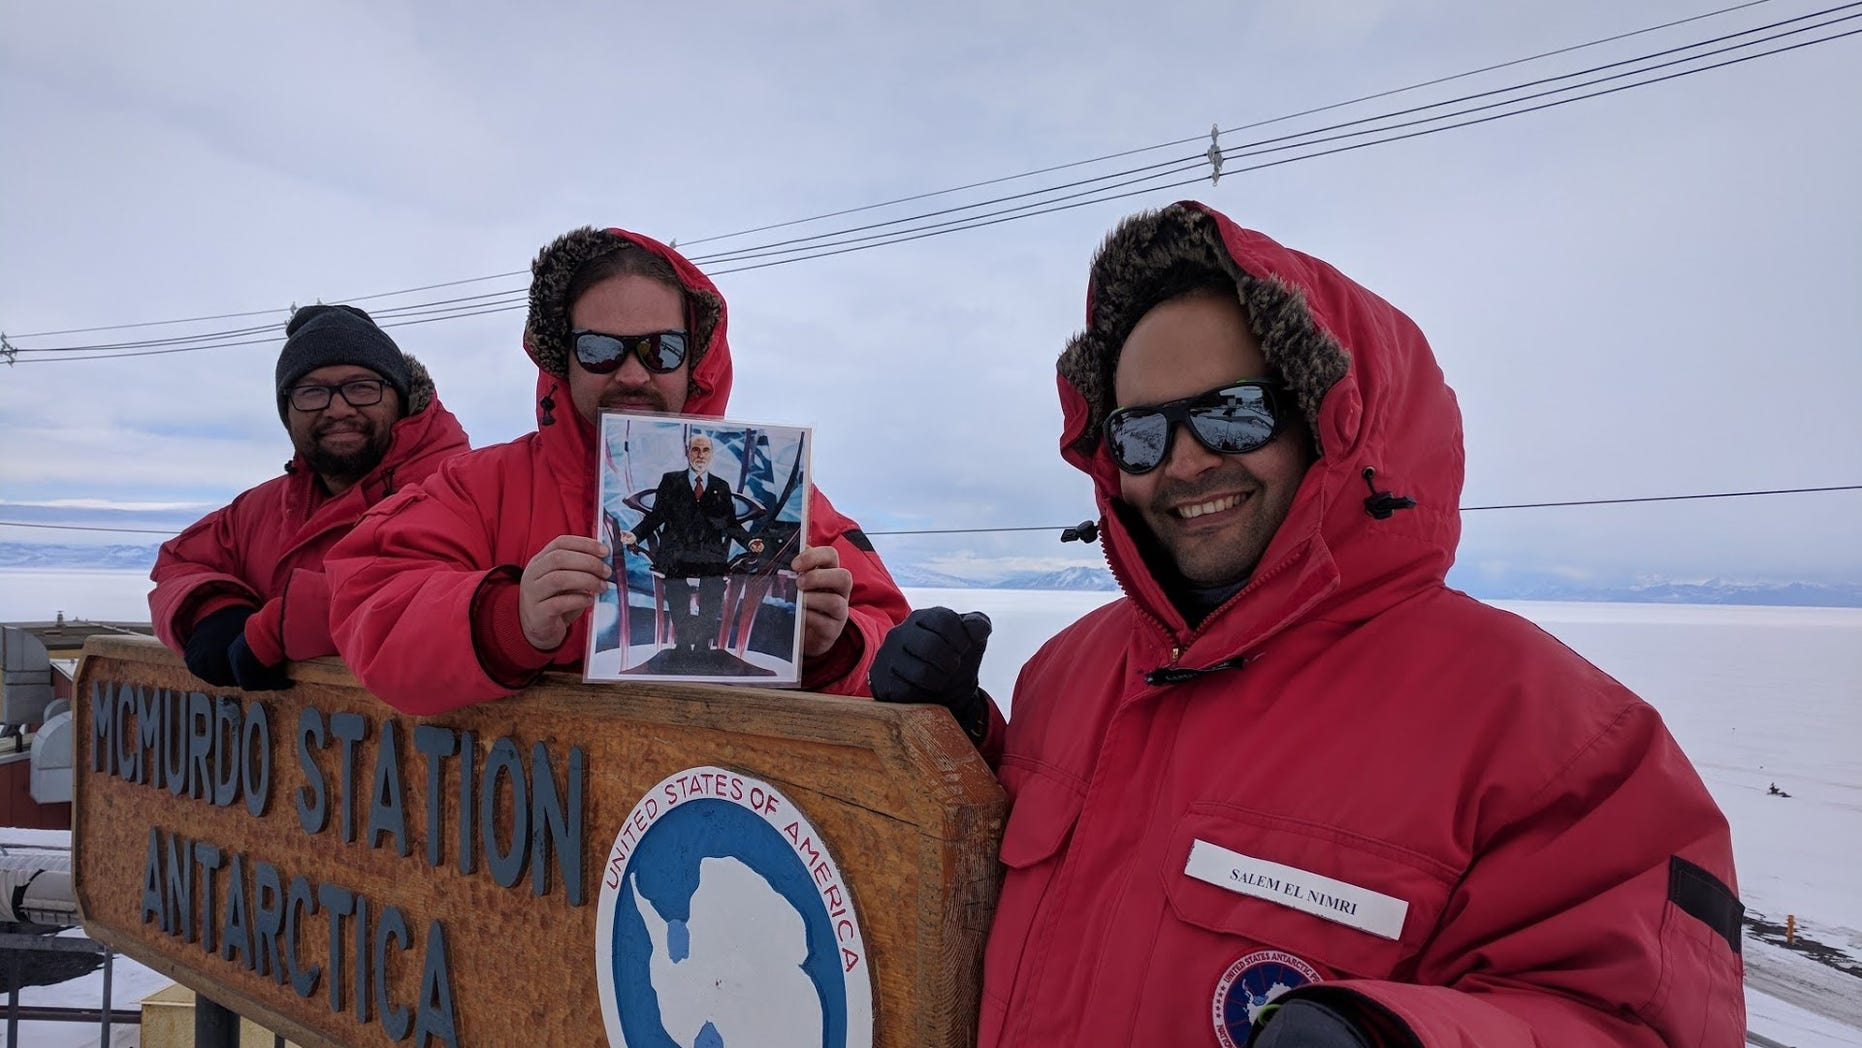 NASA engineers Mark Sinkiat, Peter Fetterer and Salem El-nimri pose at McMurdo Station in Antarctica with a picture of Vint Cerf, a visiting scientist at NASA's Jet Propulsion Laboratory, who helped develop the disruption-tolerant networking (DTN) technology that sent the selfie to the International Space Station.